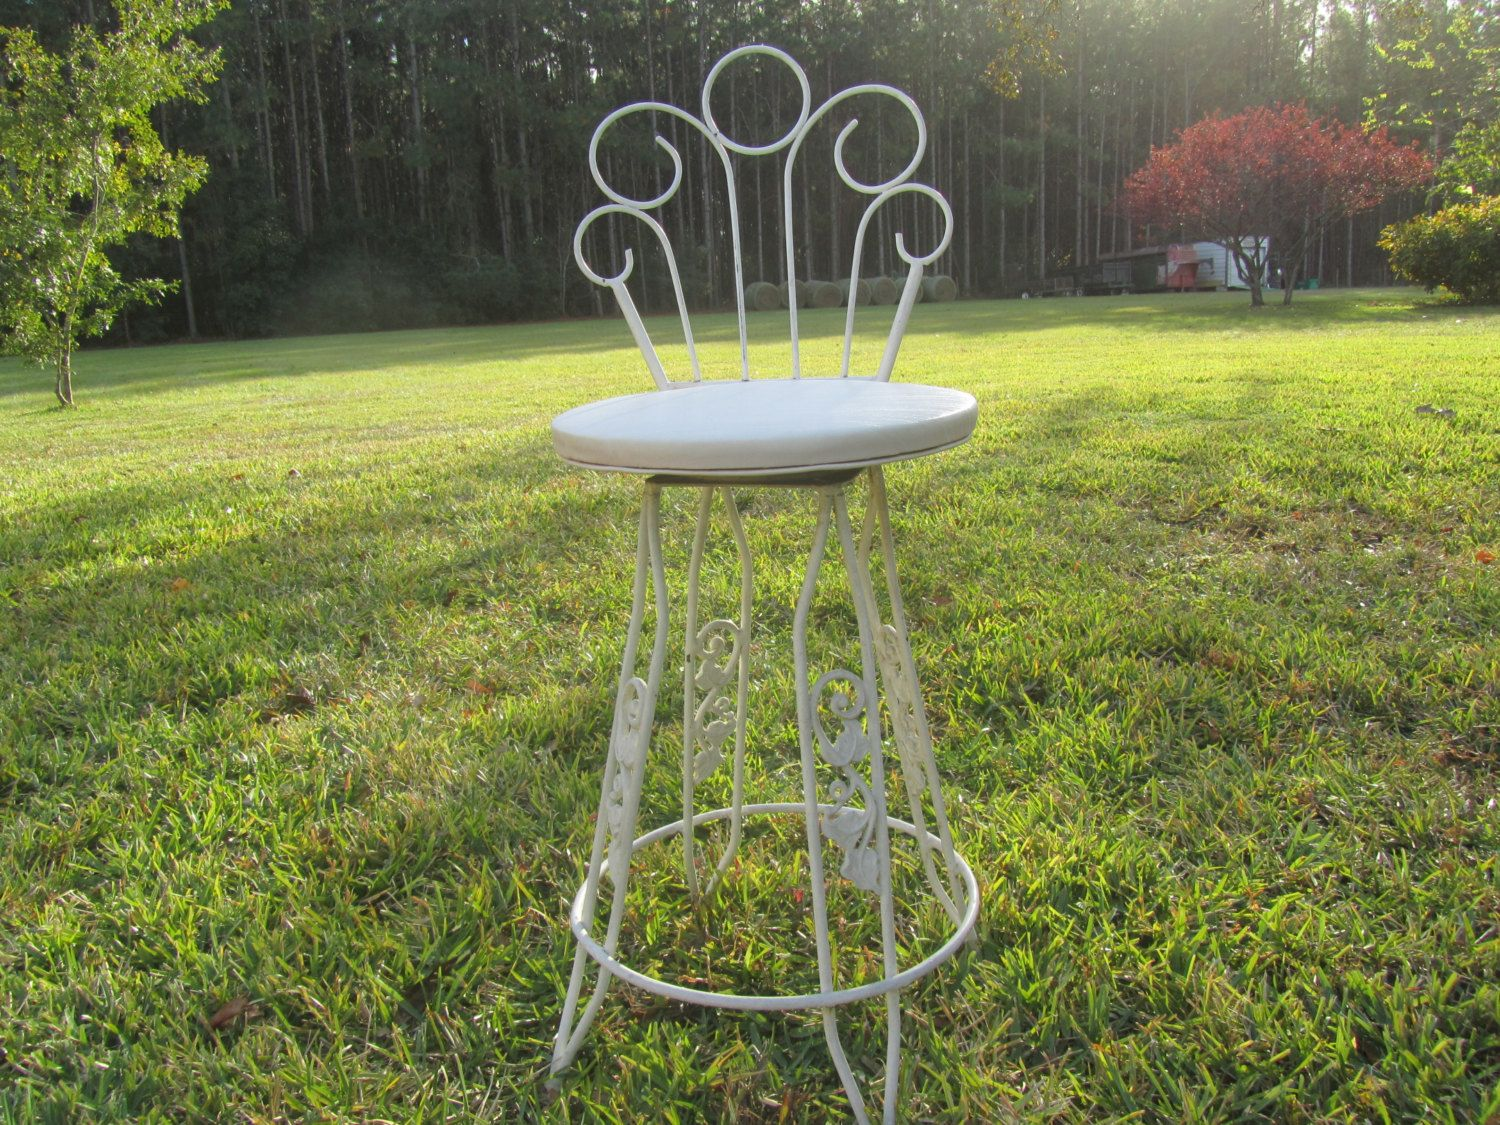 Vintage Wrought Iron Bar Stool, Retro Chair, Chippy Paint, Metal Chair, Tall